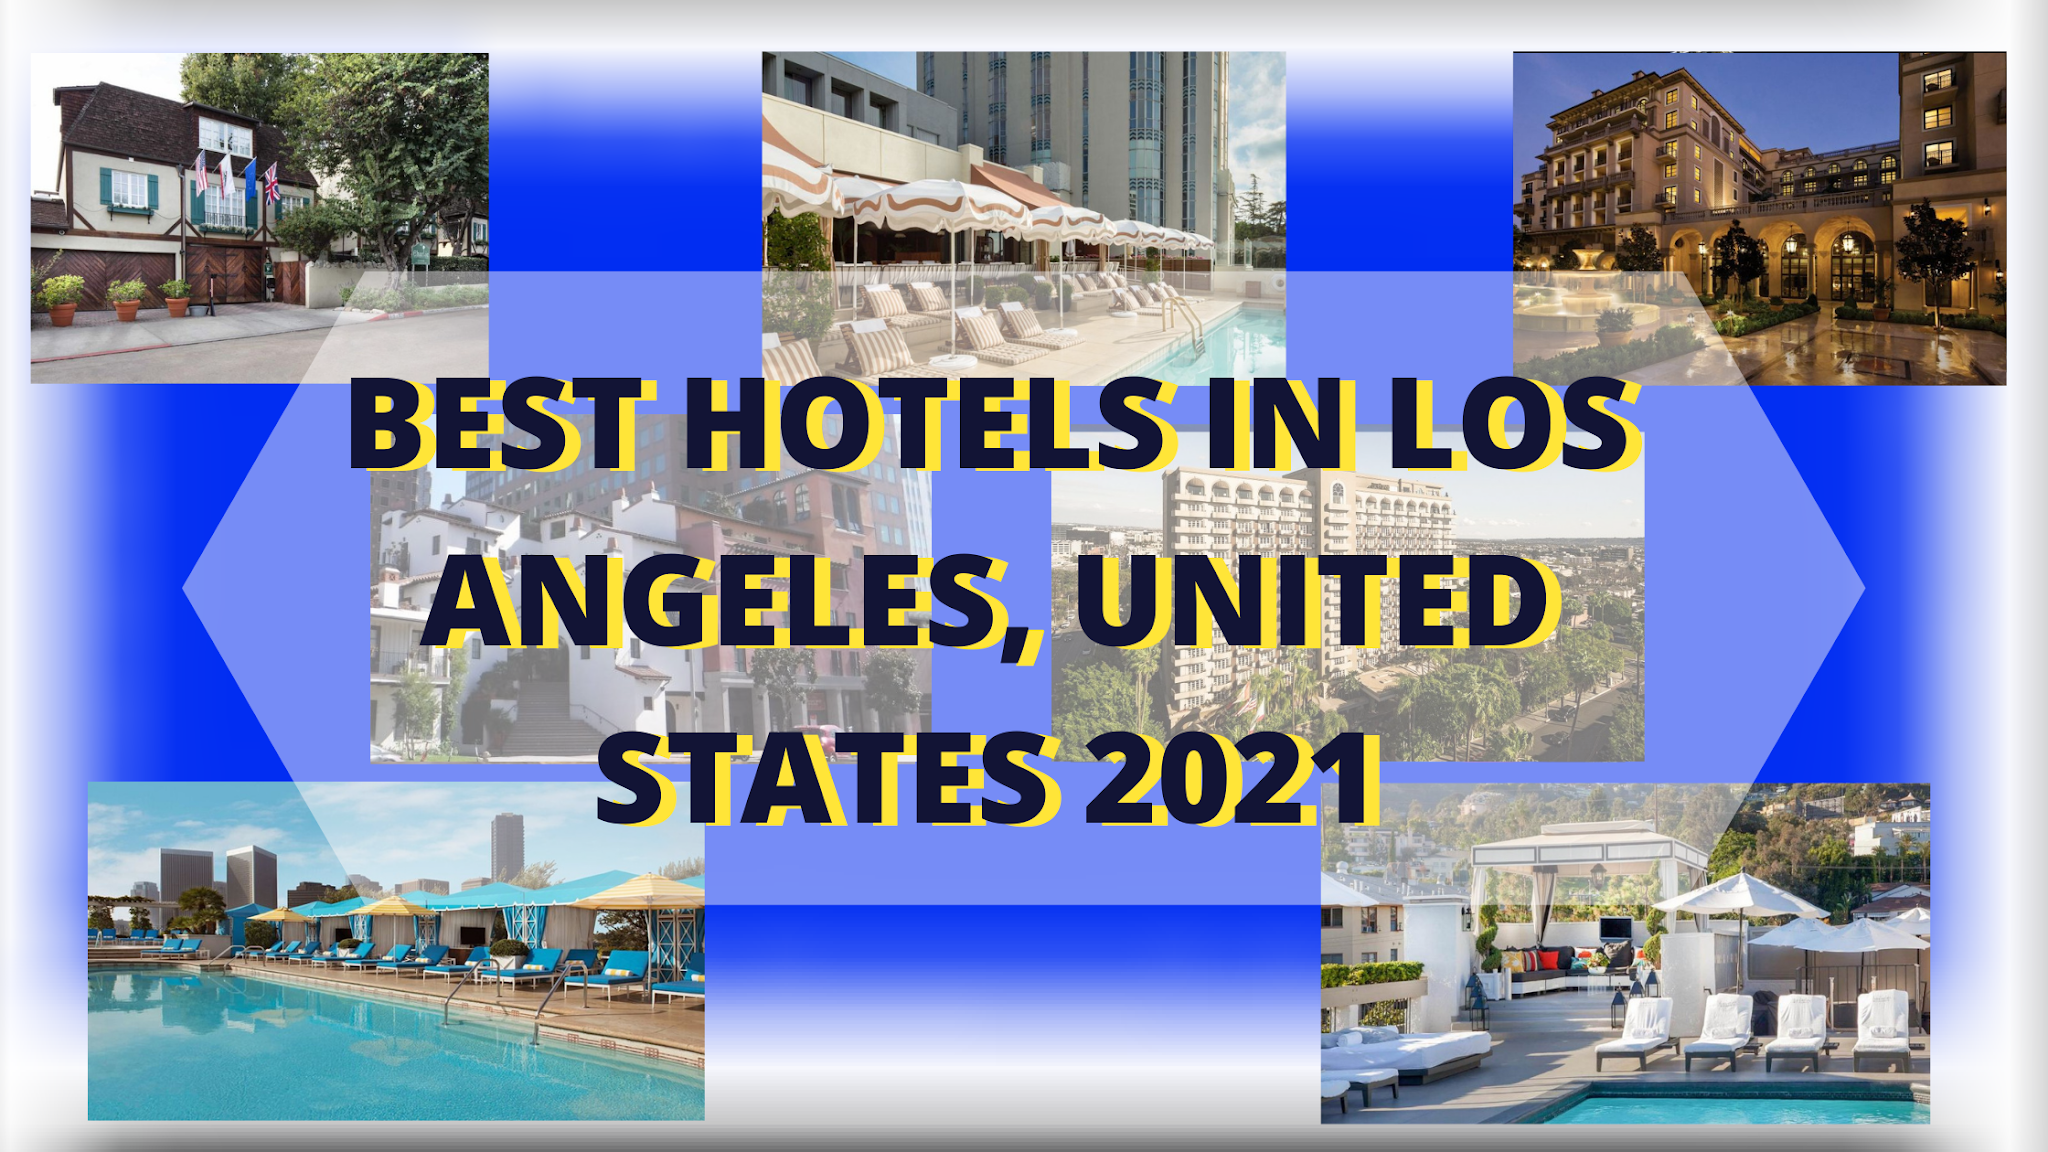 Best Hotels in Los Angeles, the United States 2021